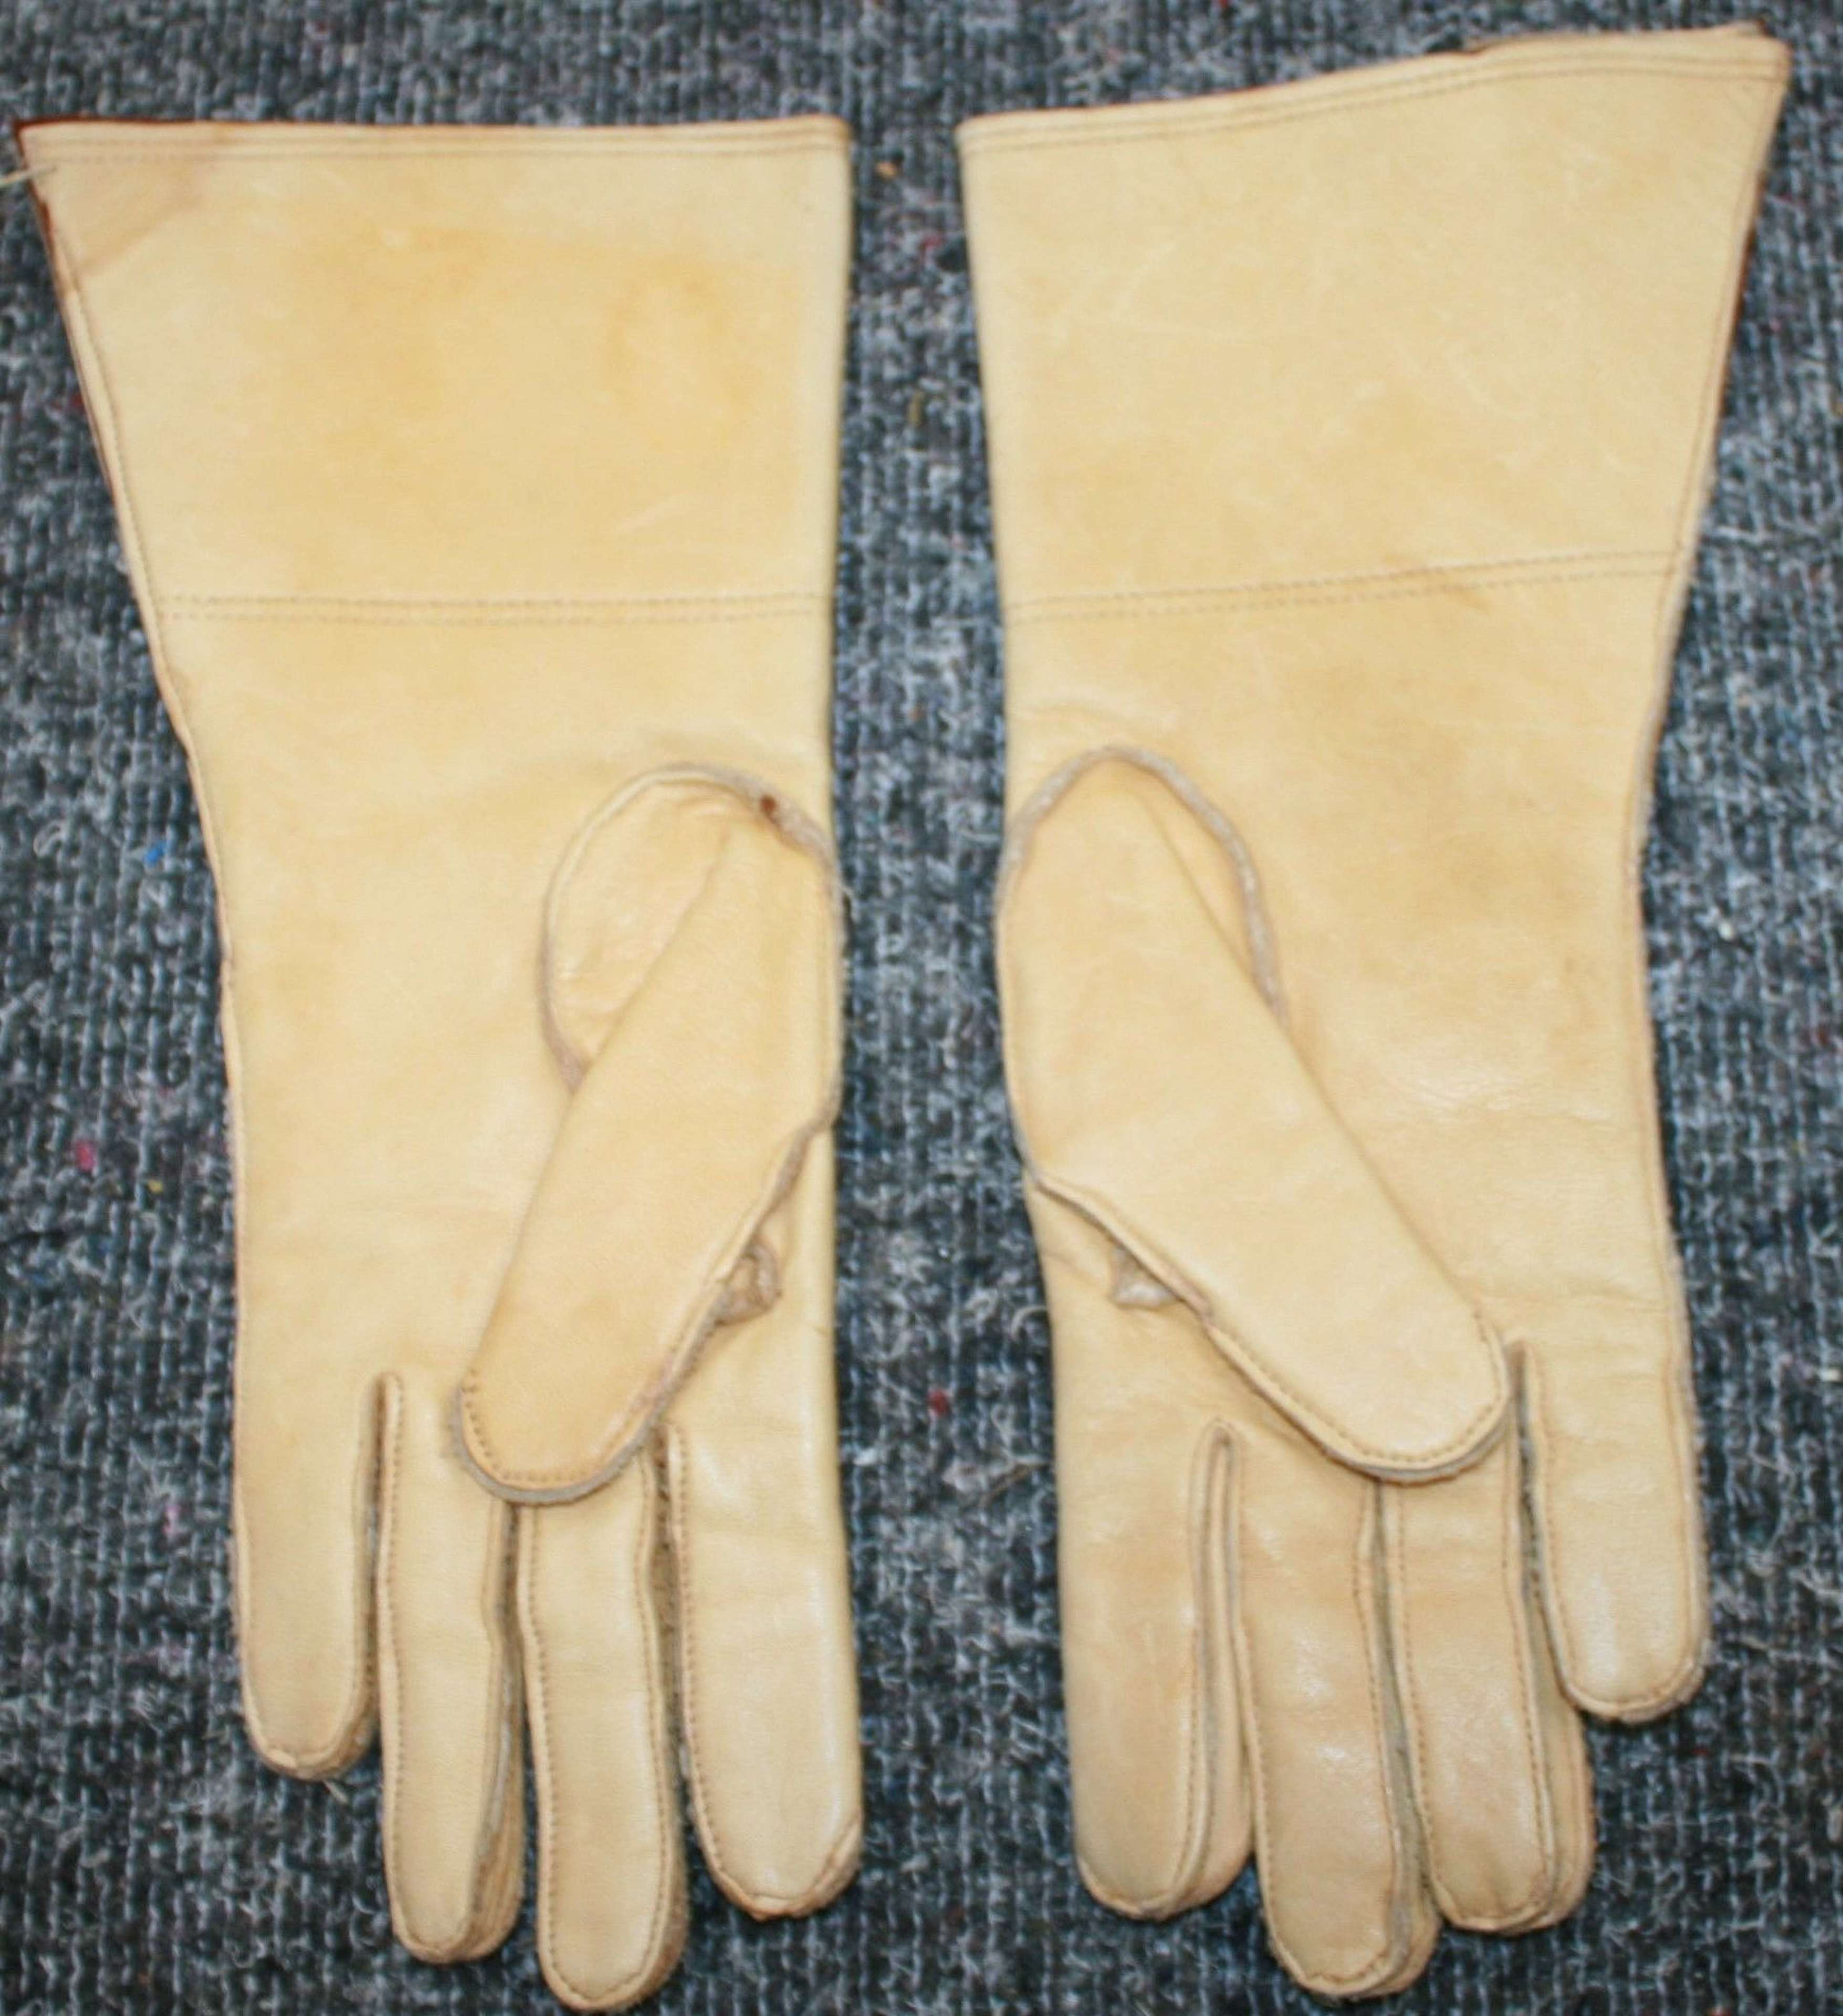 A VERY GOOD PAIR OF THE ATS DR'S GLOVES SIZE 7